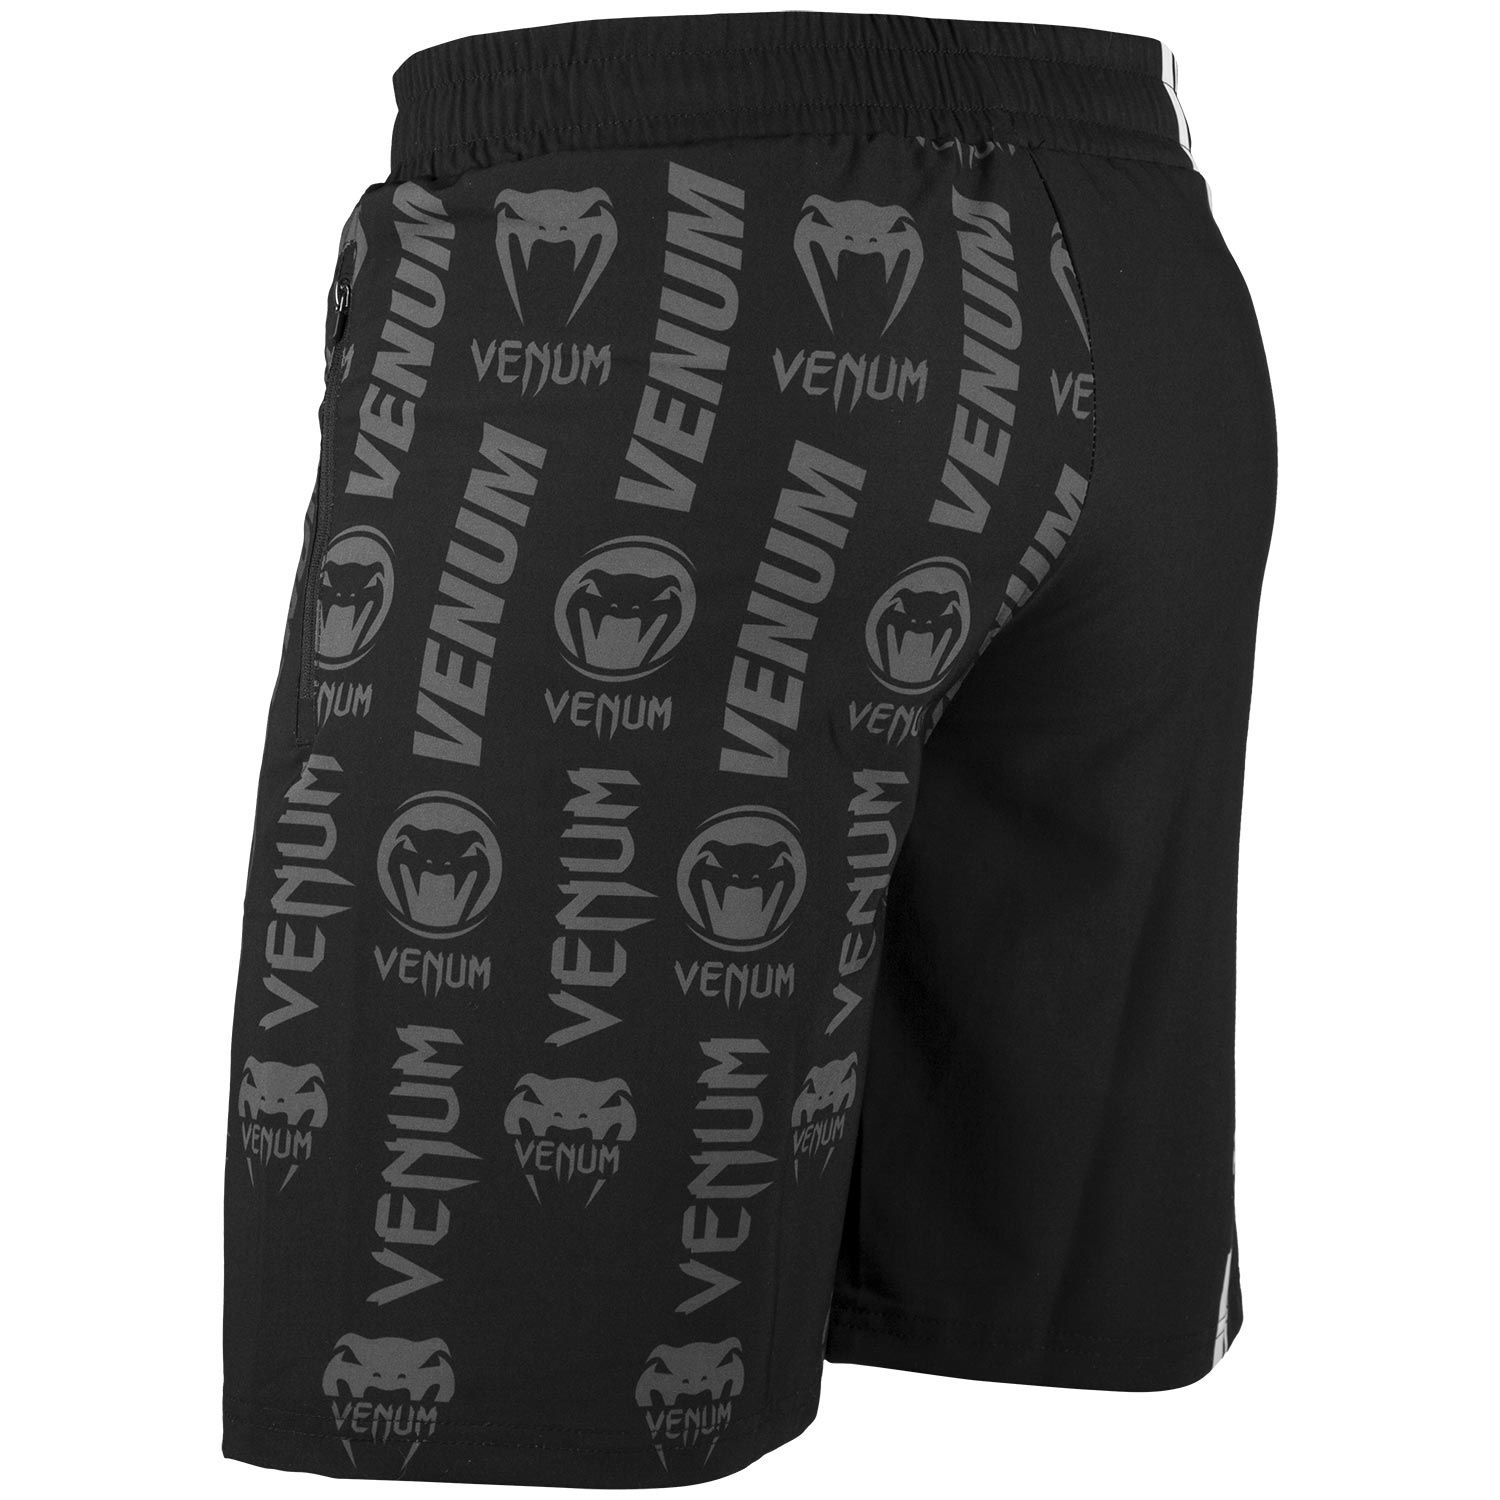 Шорты Venum Logos Training Shorts Black/White фото 3